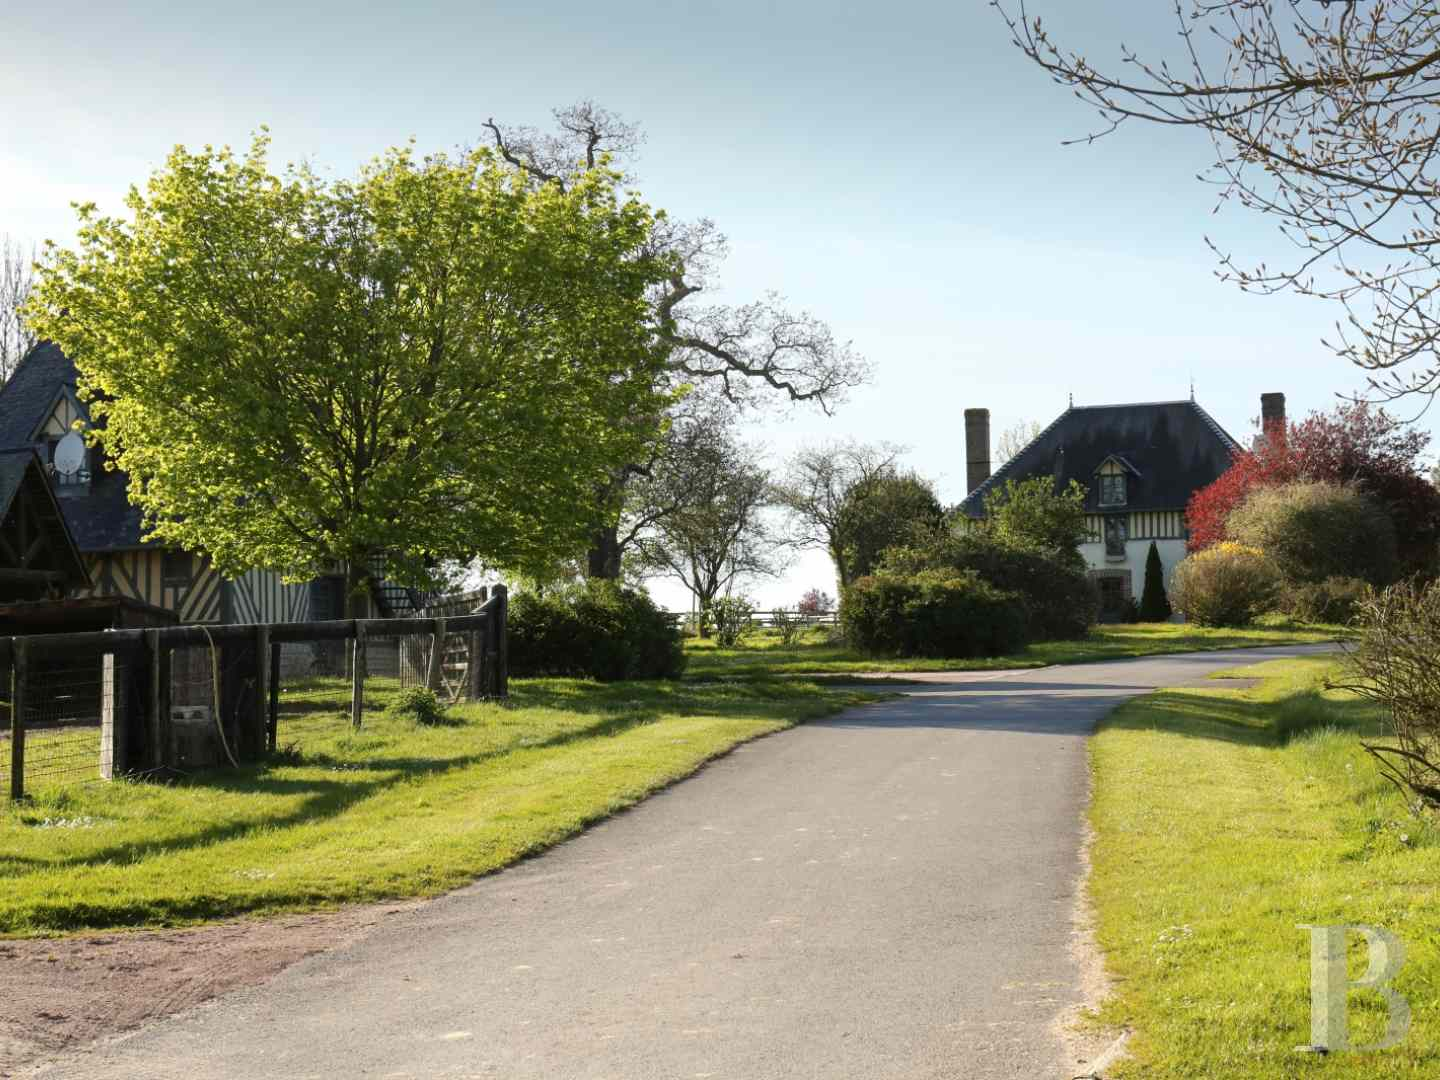 France mansions for sale lower normandy manors equestrian - 9 zoom